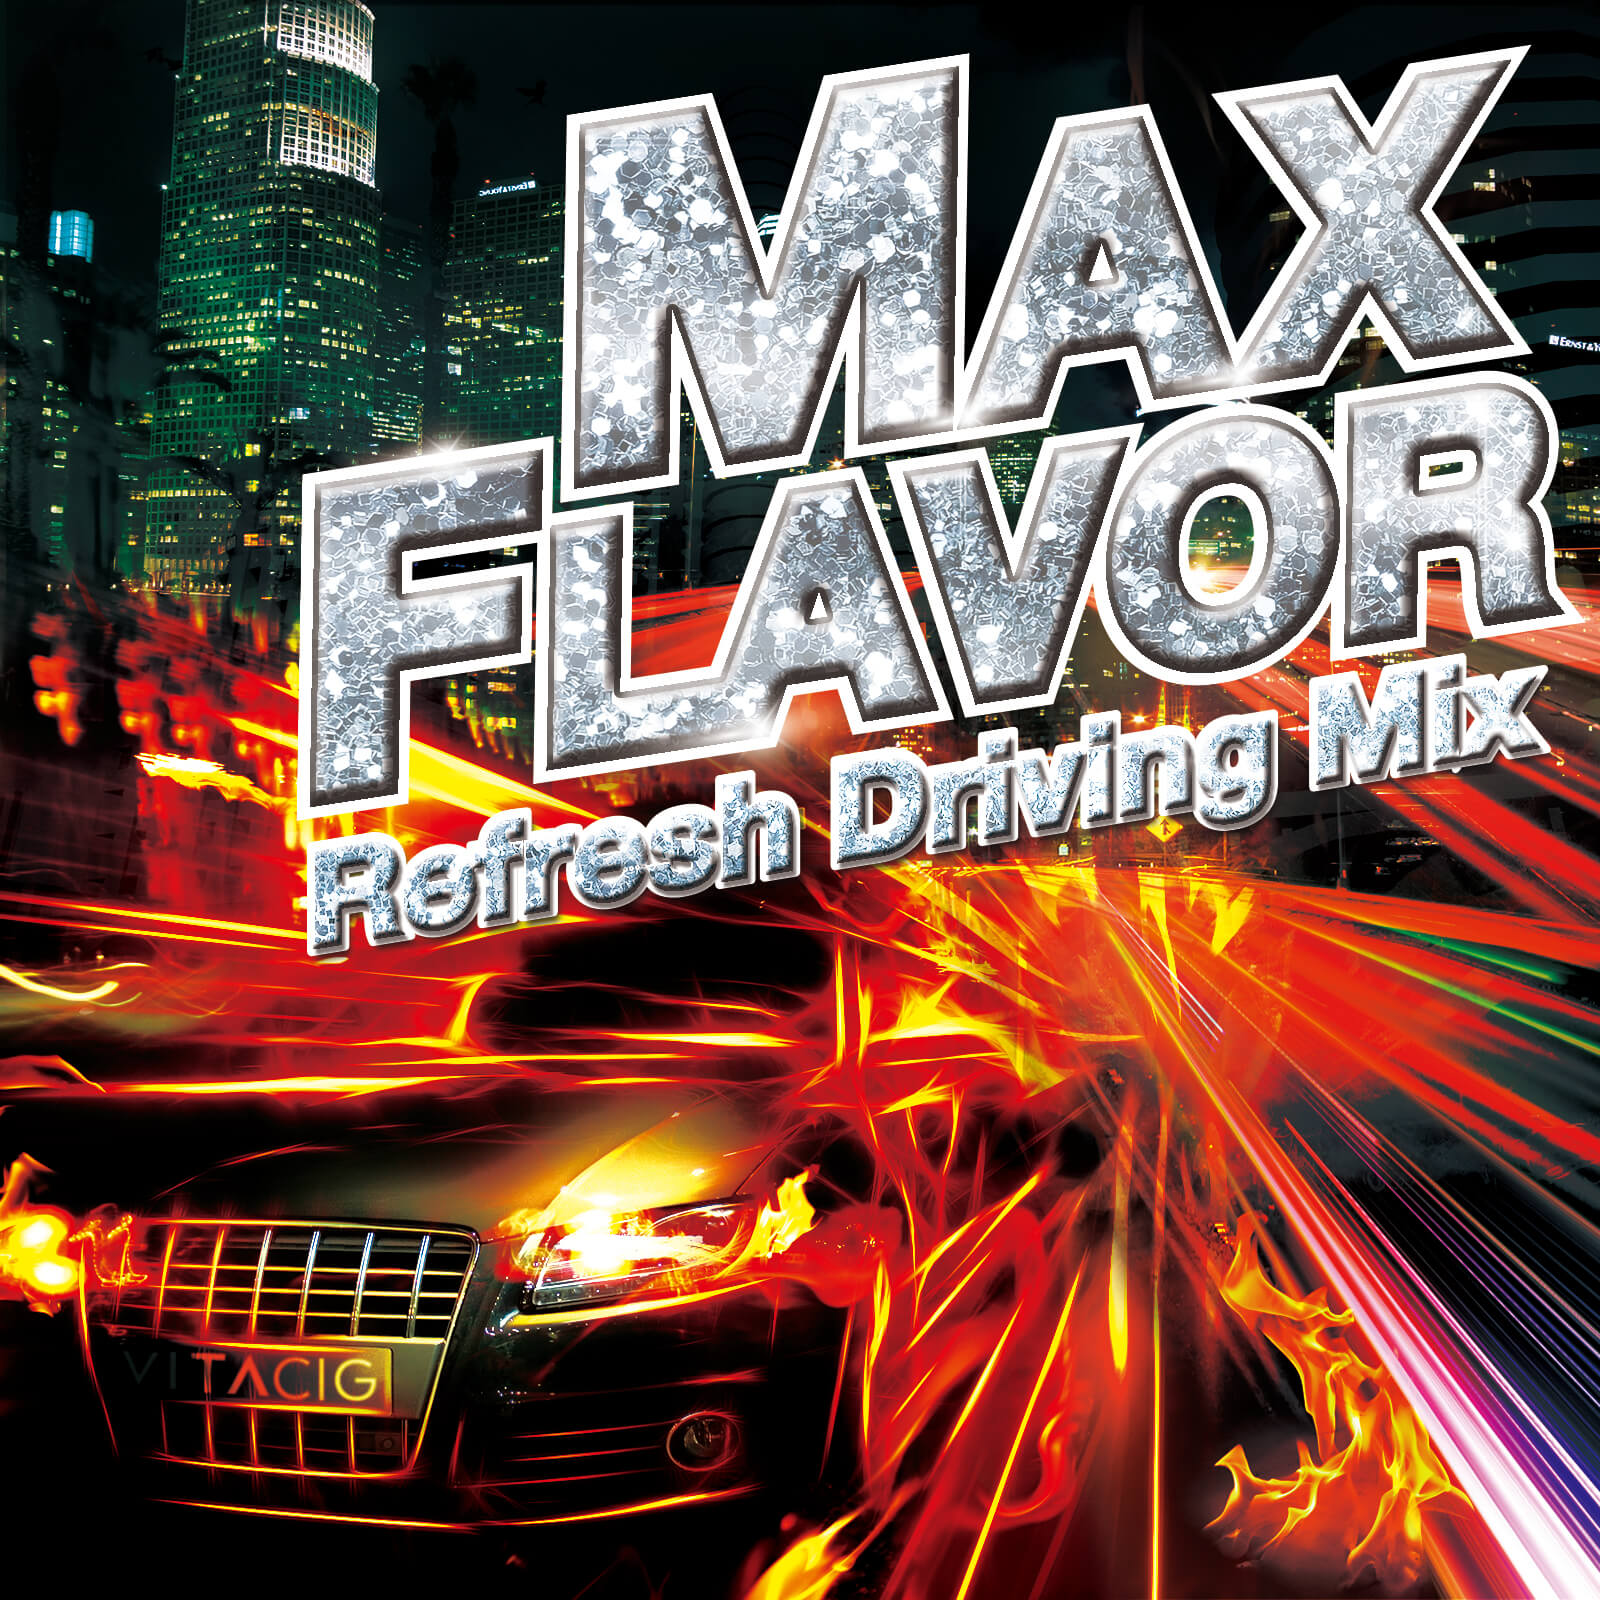 MAX FLAVOR -Refresh Driving Mix